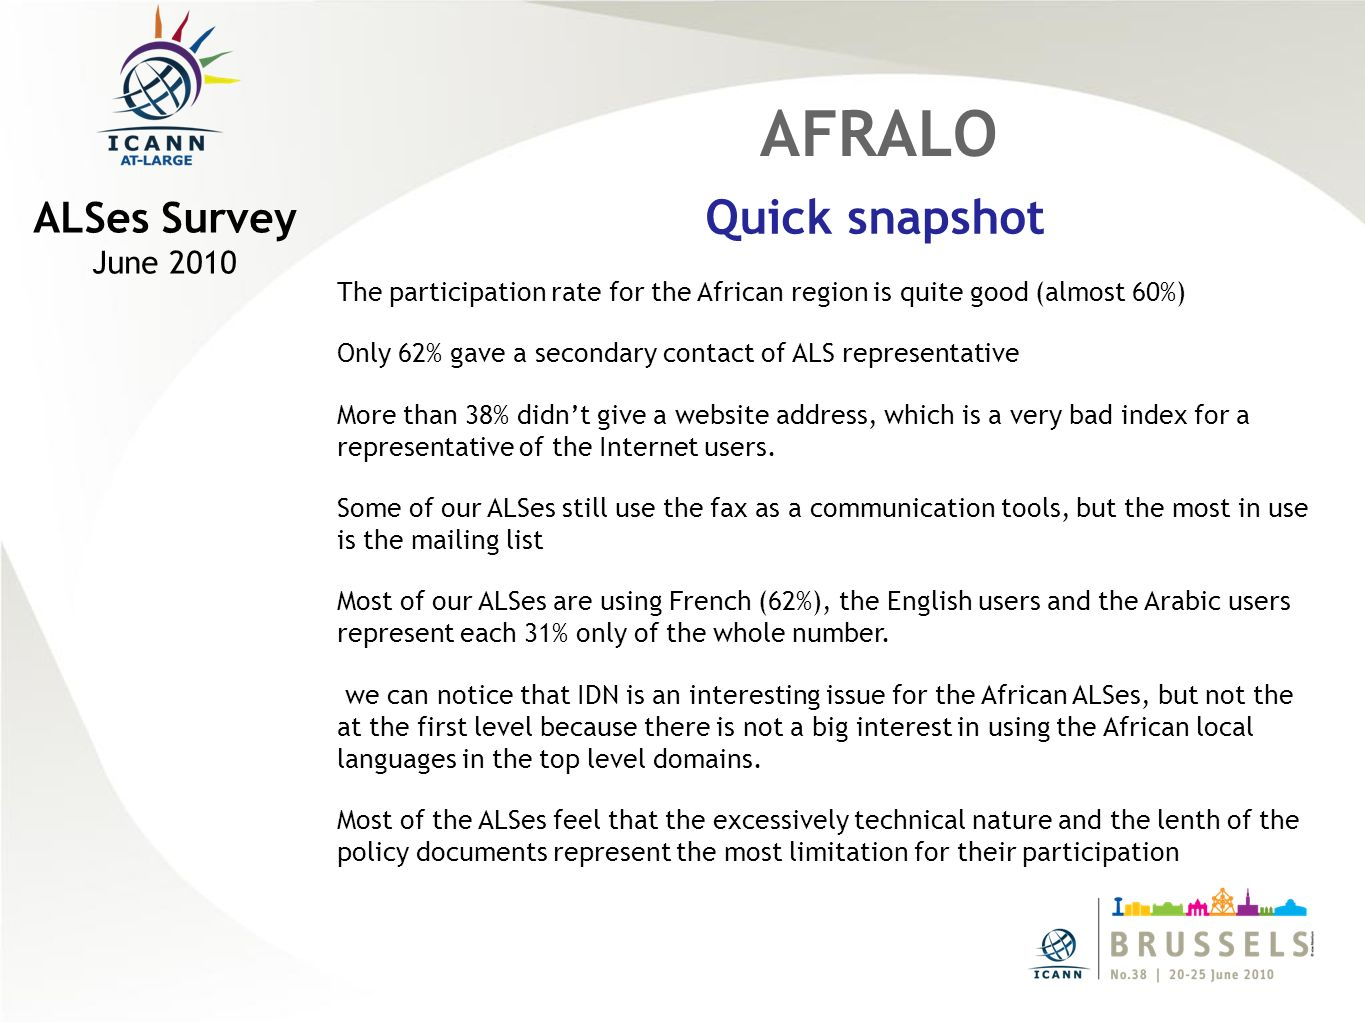 AFRALO Quick snapshot ALSes Survey June 2010 The participation rate for the African region is quite good (almost 60%) Only 62% gave a secondary contact of ALS representative More than 38% didnt give a website address, which is a very bad index for a representative of the Internet users.